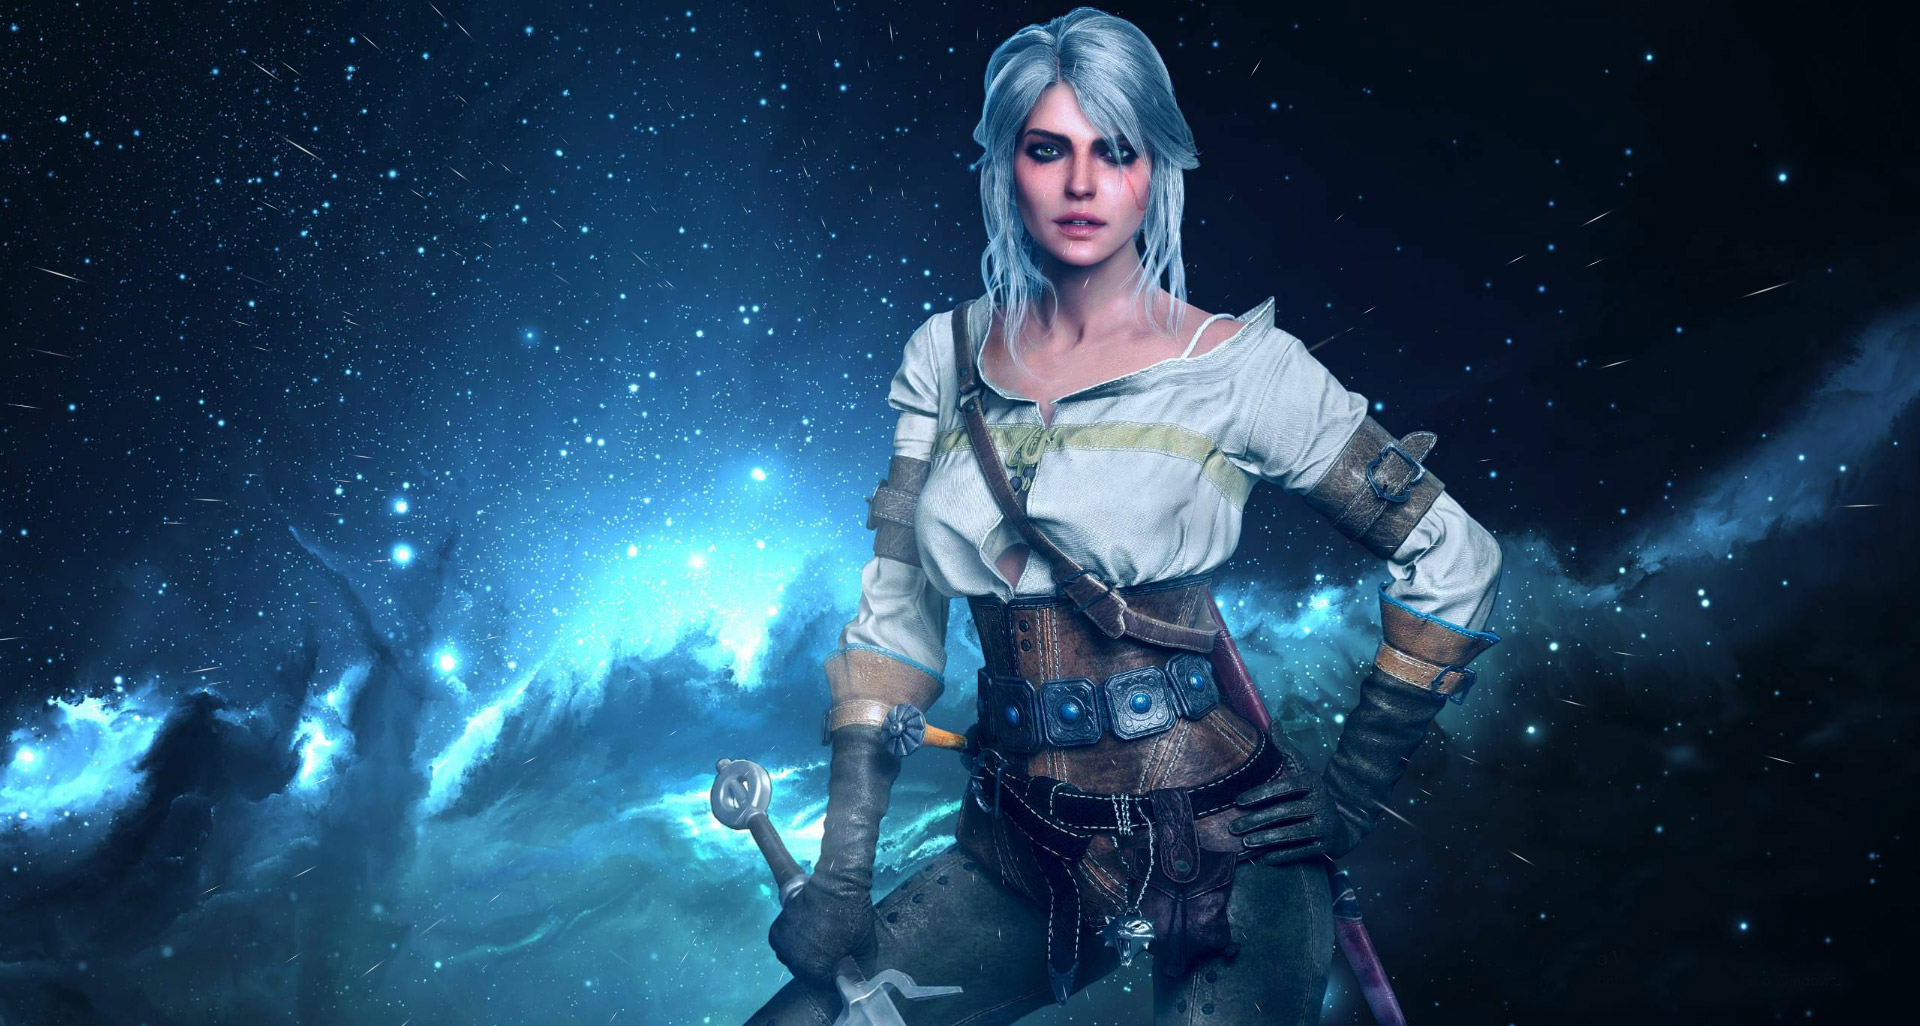 Ciri The Witcher 3 Animated Live Wallpaper 1920x1026